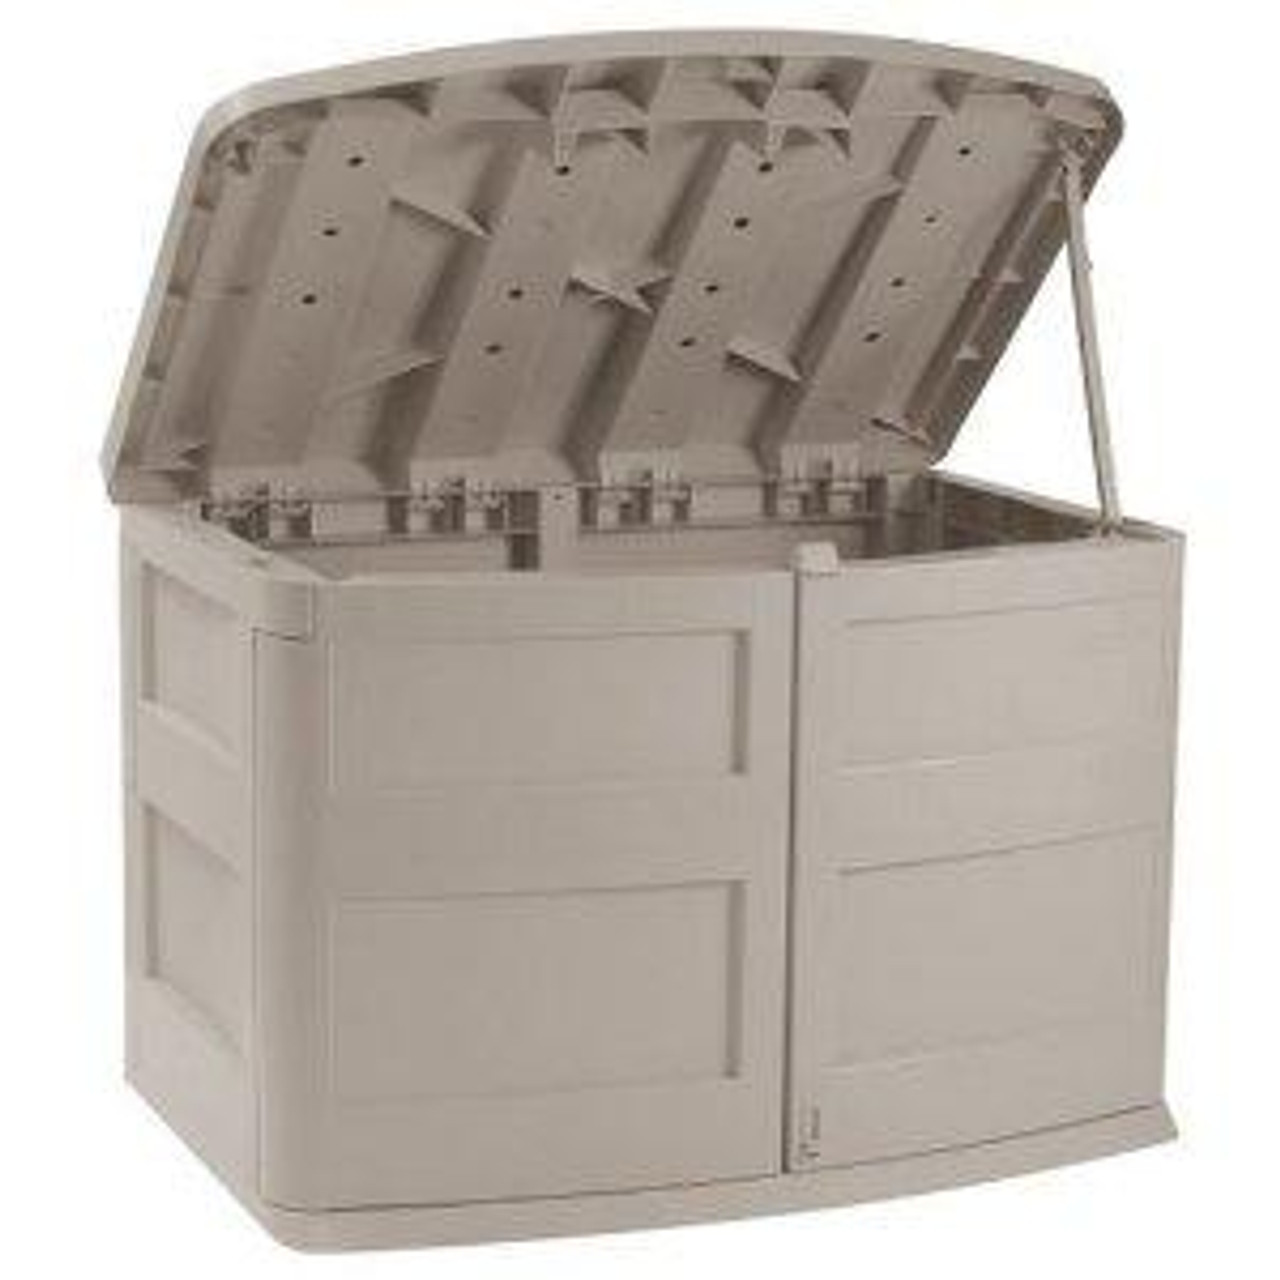 Horizontal Trash Can Storage Shed Garbage Can Hide Away with Top Open